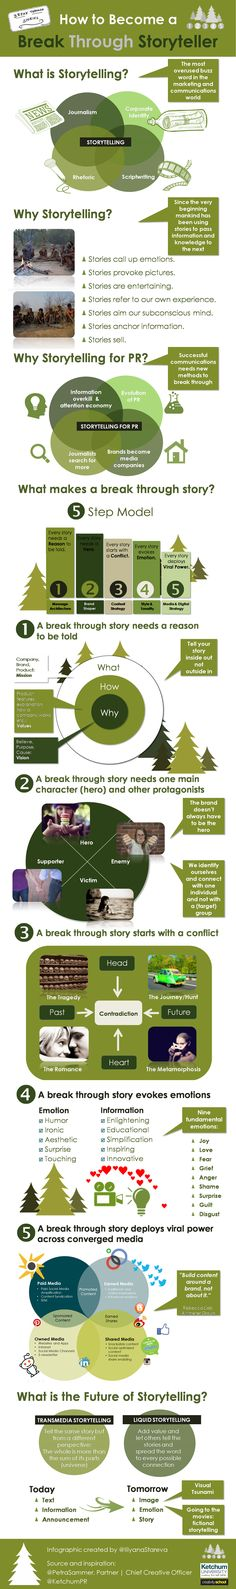 How to Become a Break Through Storyteller #infographic #thewisesage The Wise Sage